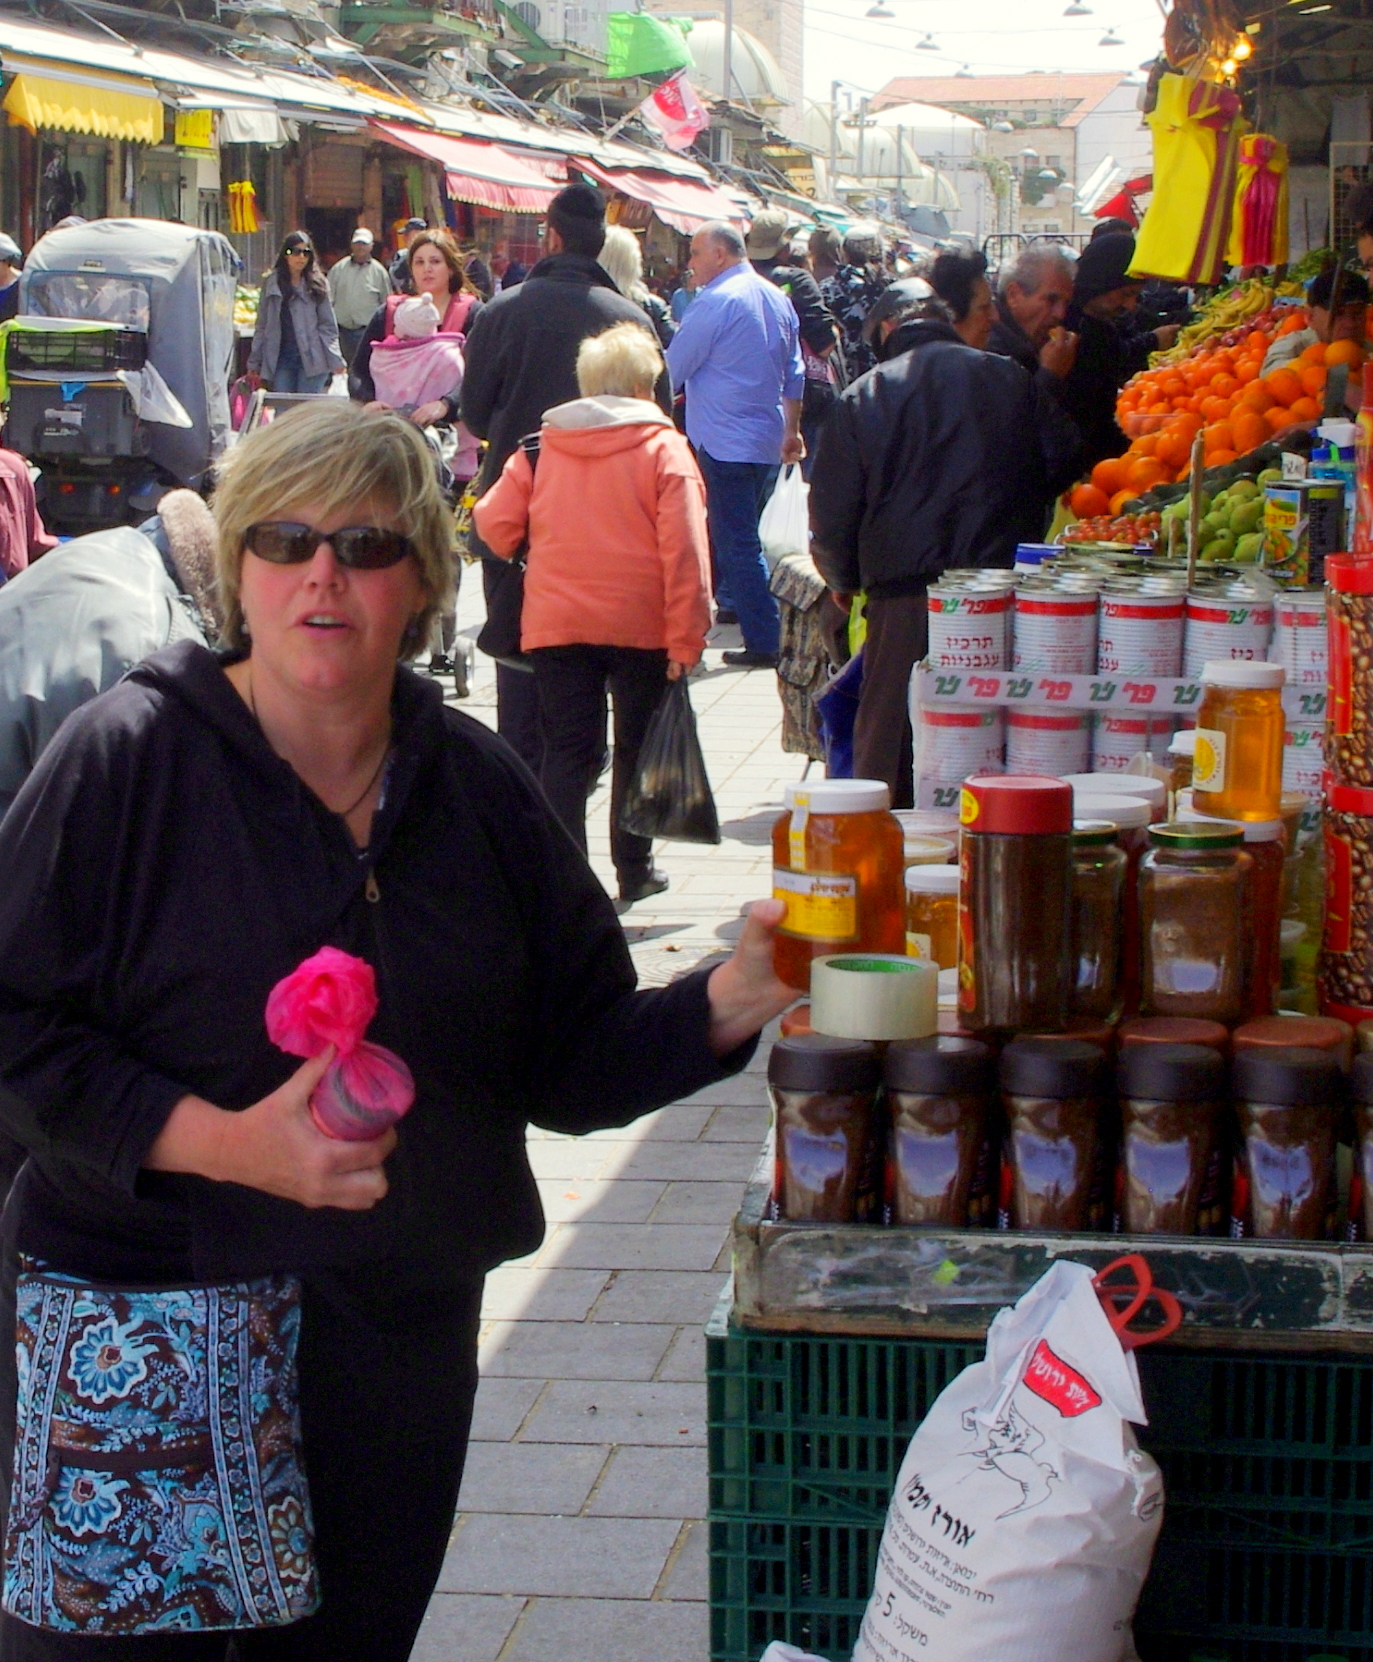 In pursiuit of honey in Isreal, market in Jerusalem